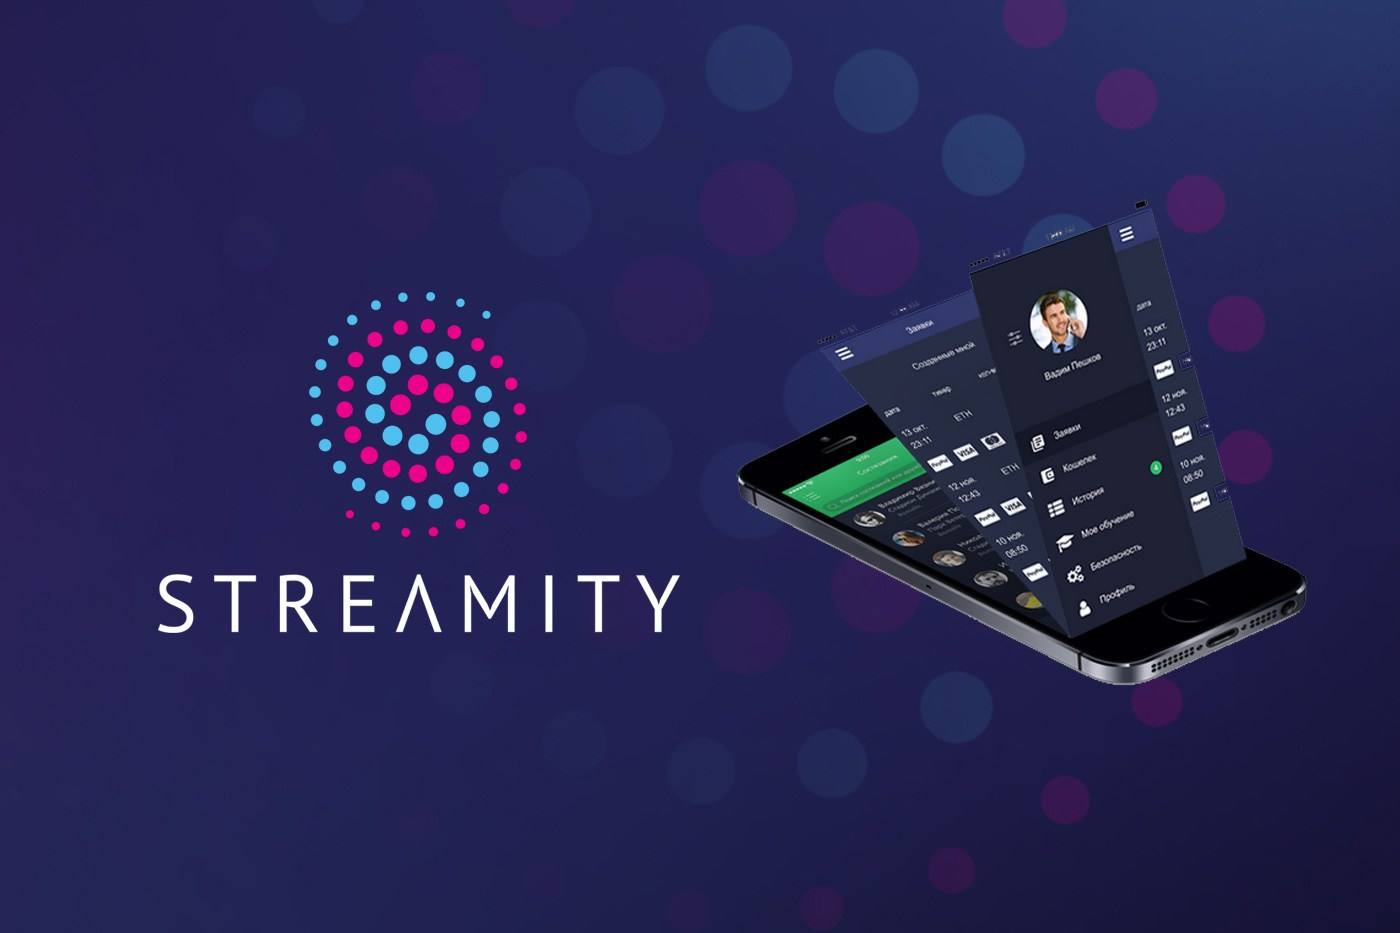 streamity-first-decentralized-cryptocurrency-exchange-ico.jpg